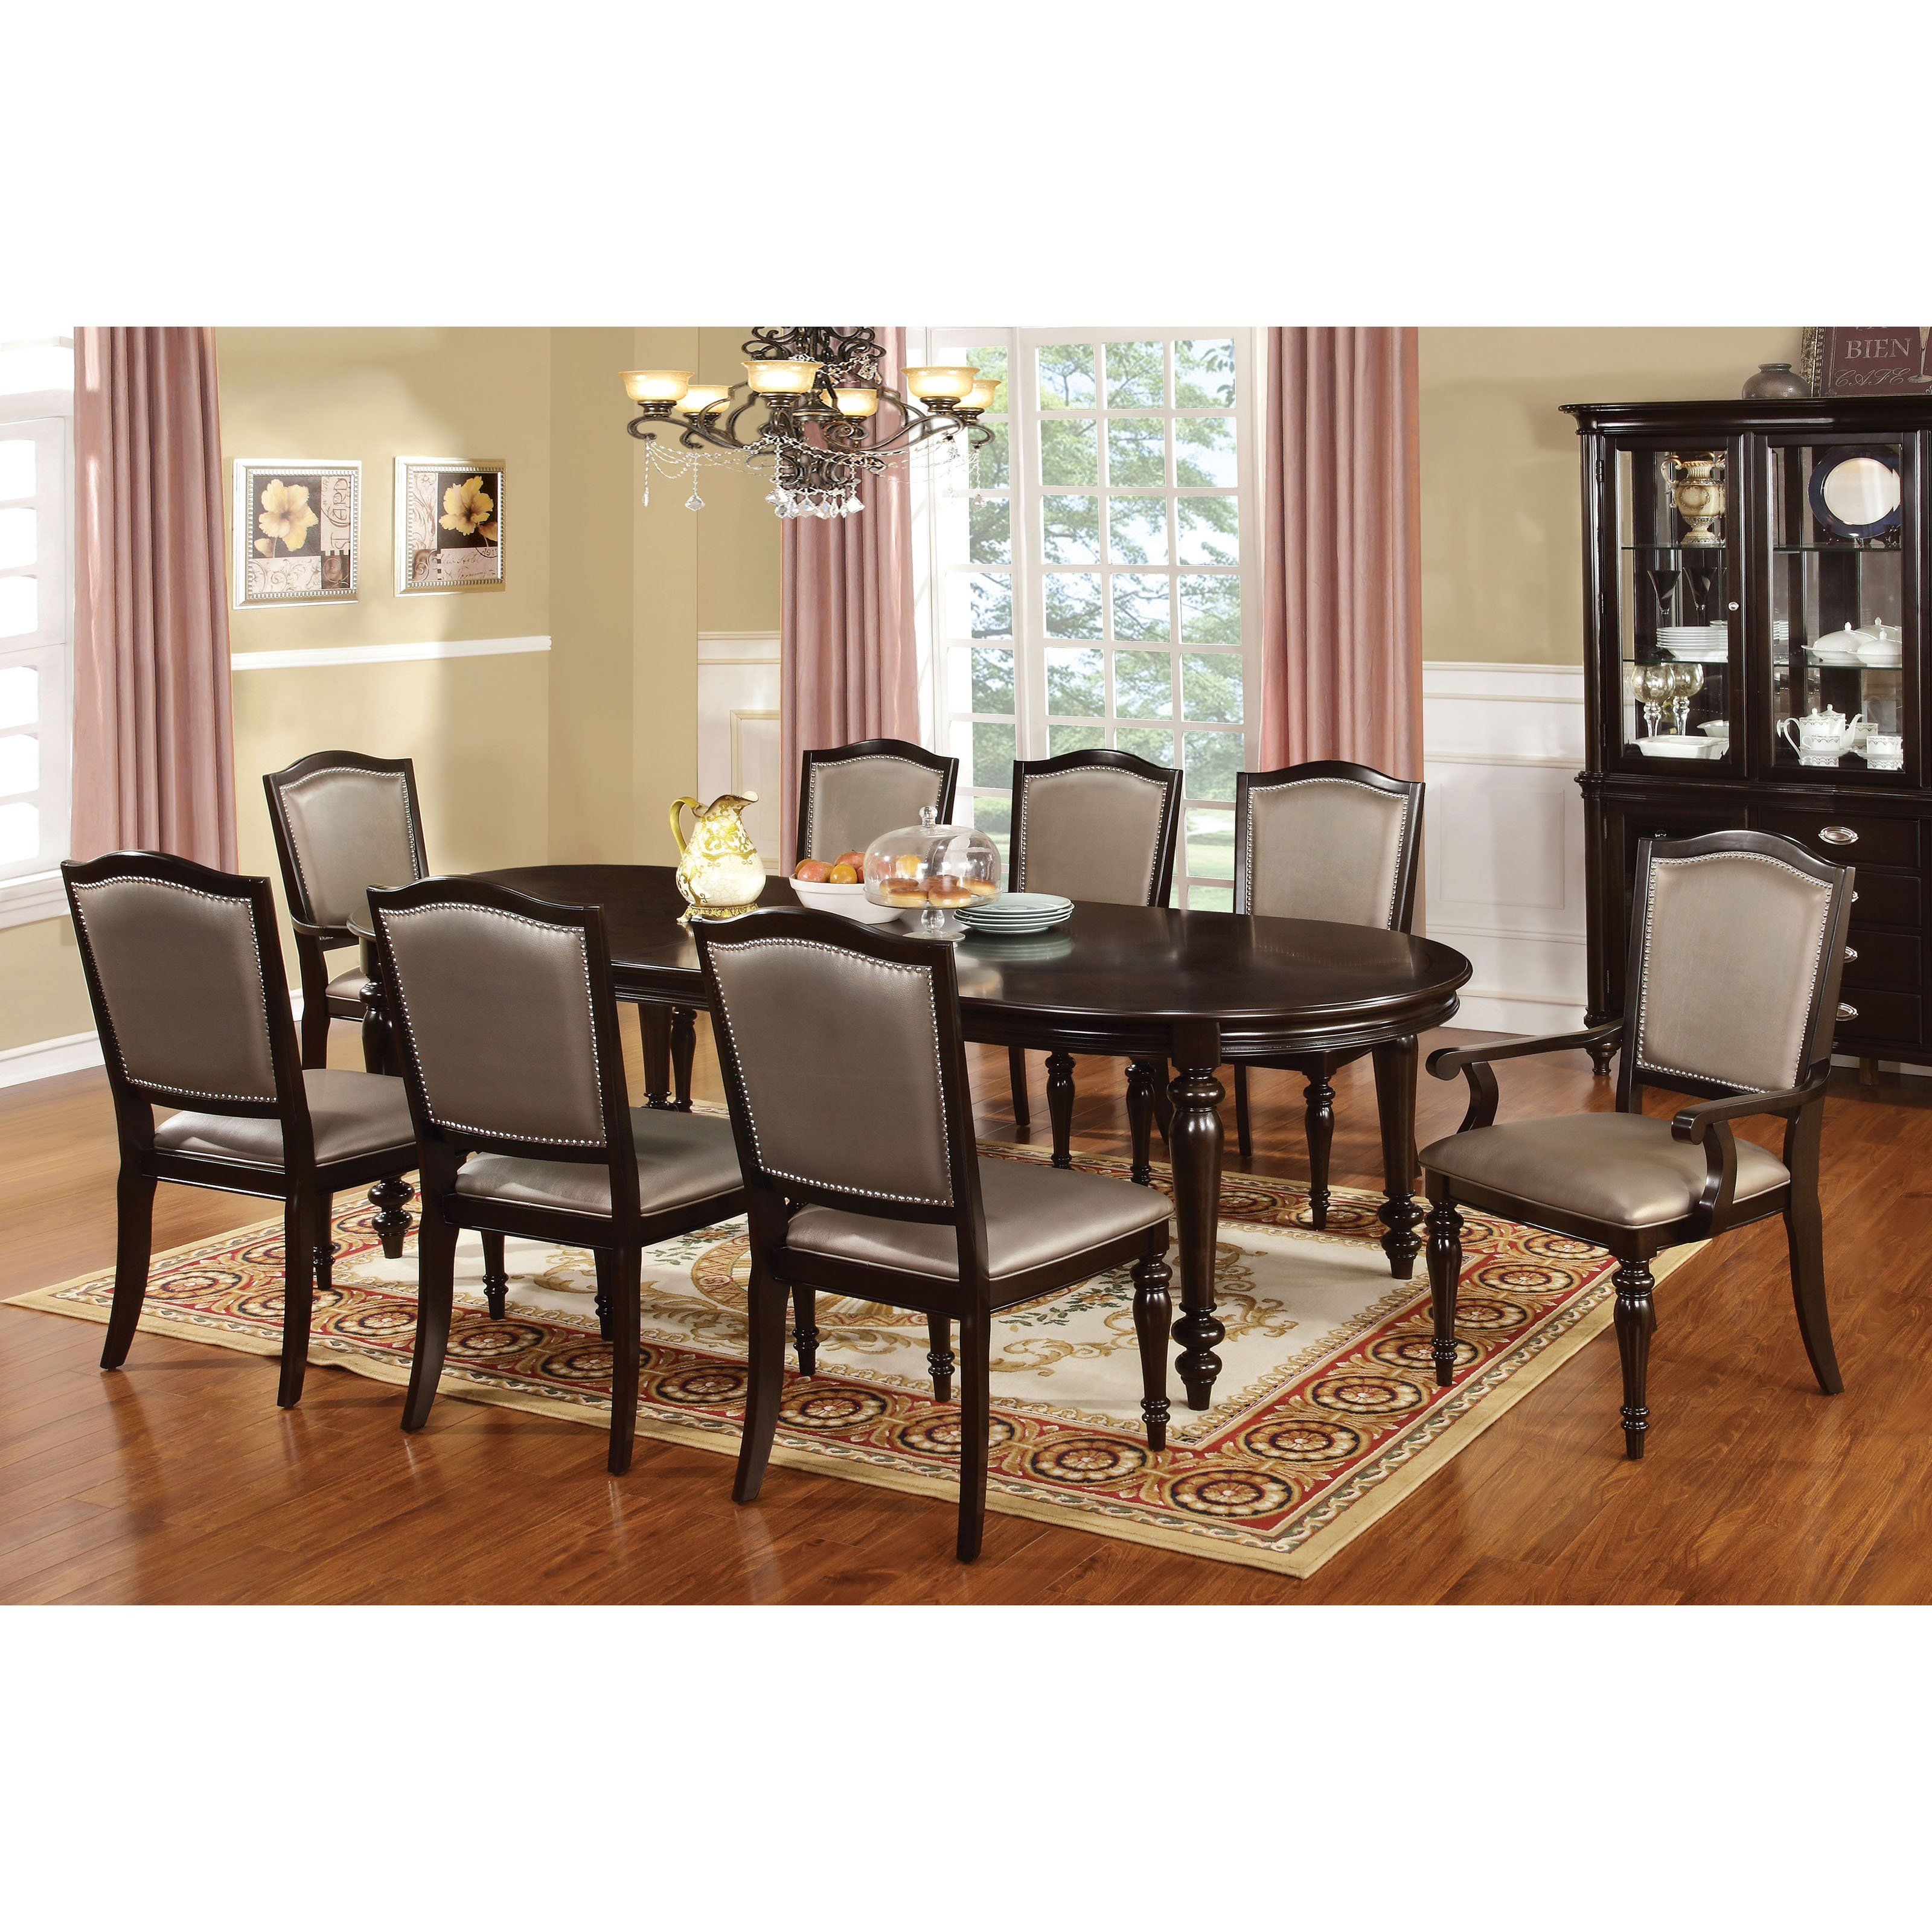 Furniture Of America Lucia 9 Piece Formal Dining Table Idf 3970t Gl 9pc